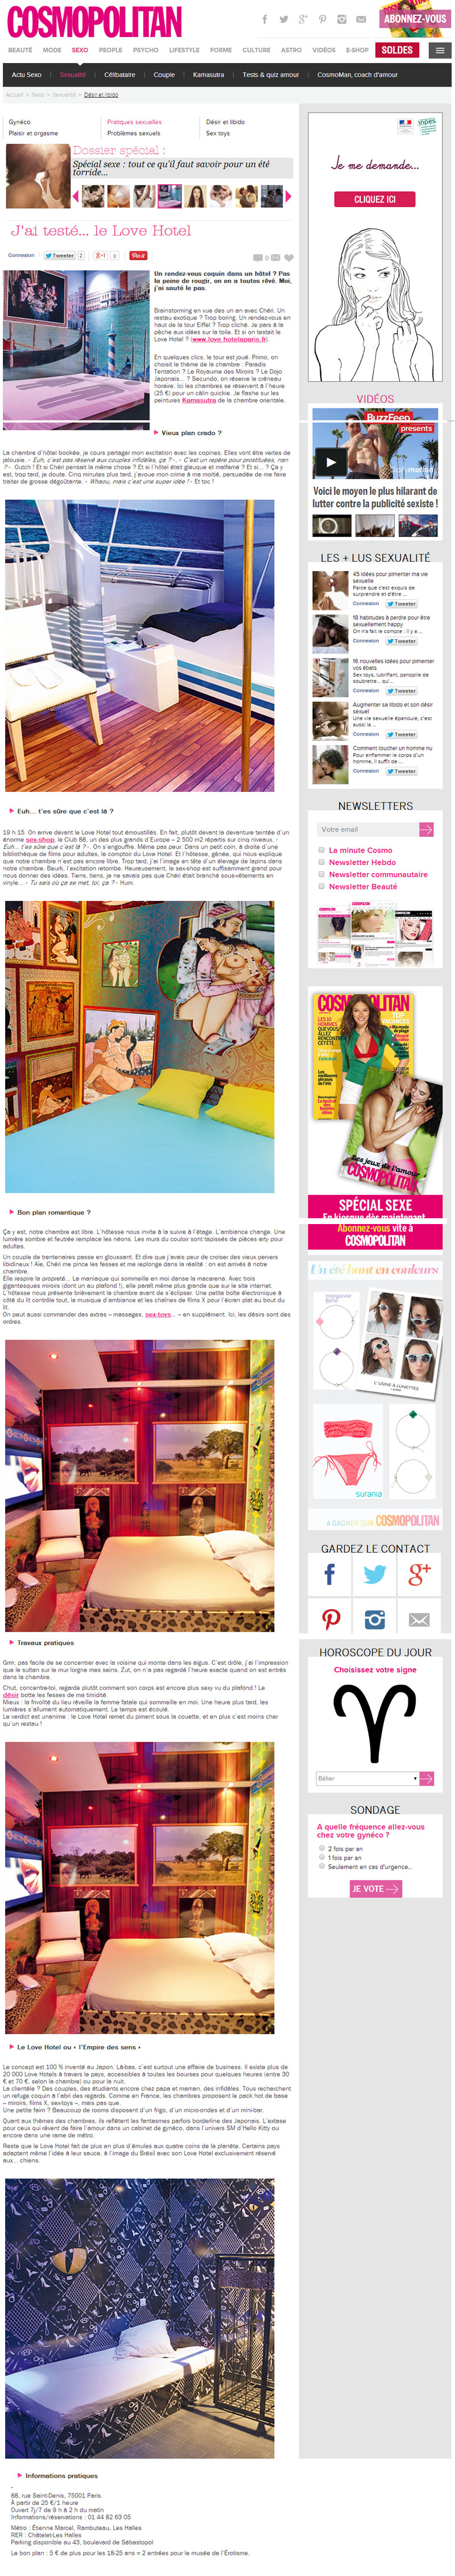 article lovehotel a paris sur cosmopolitan.fr